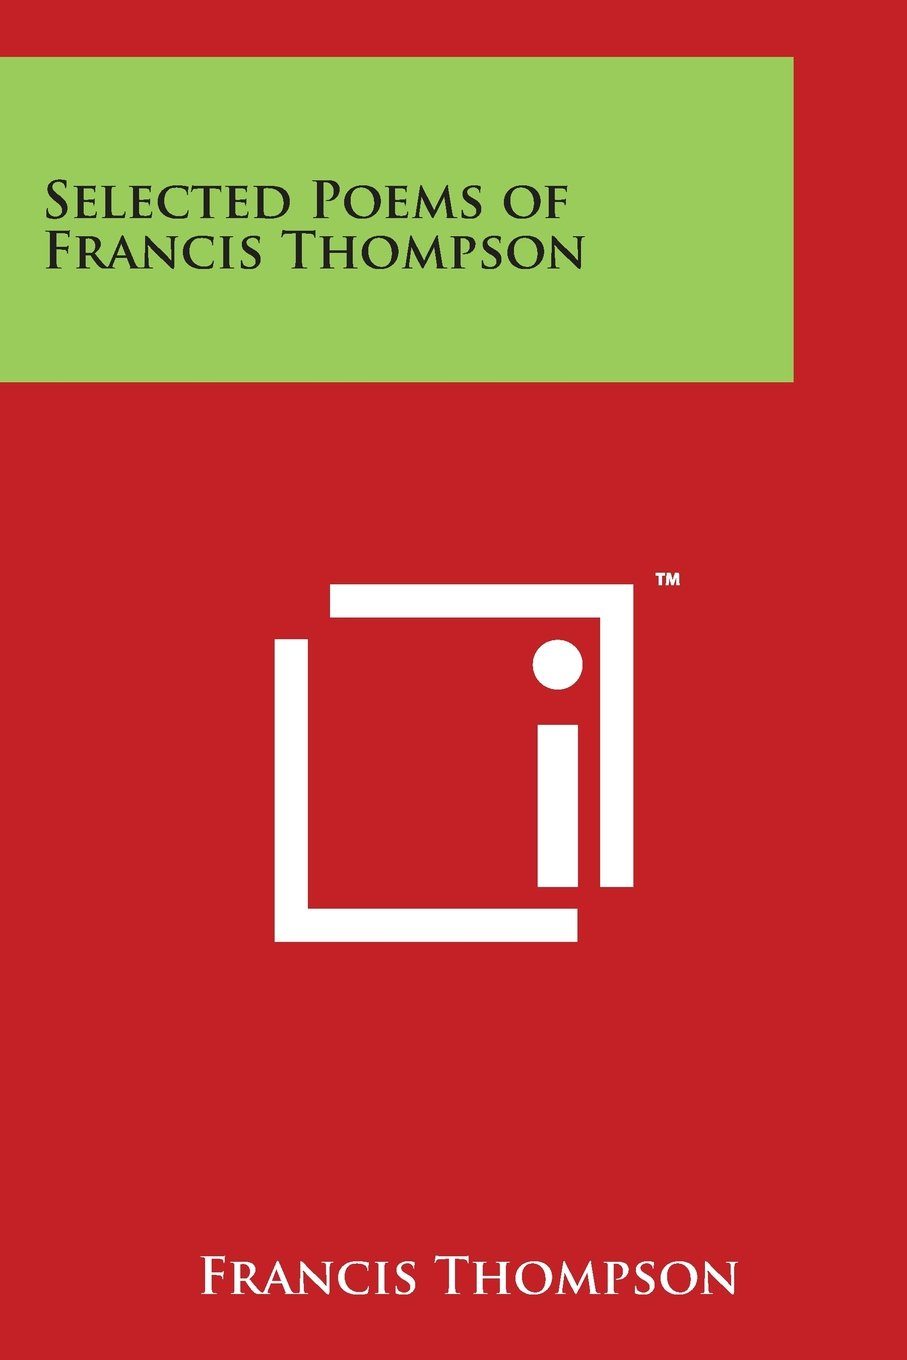 francis thompson poems